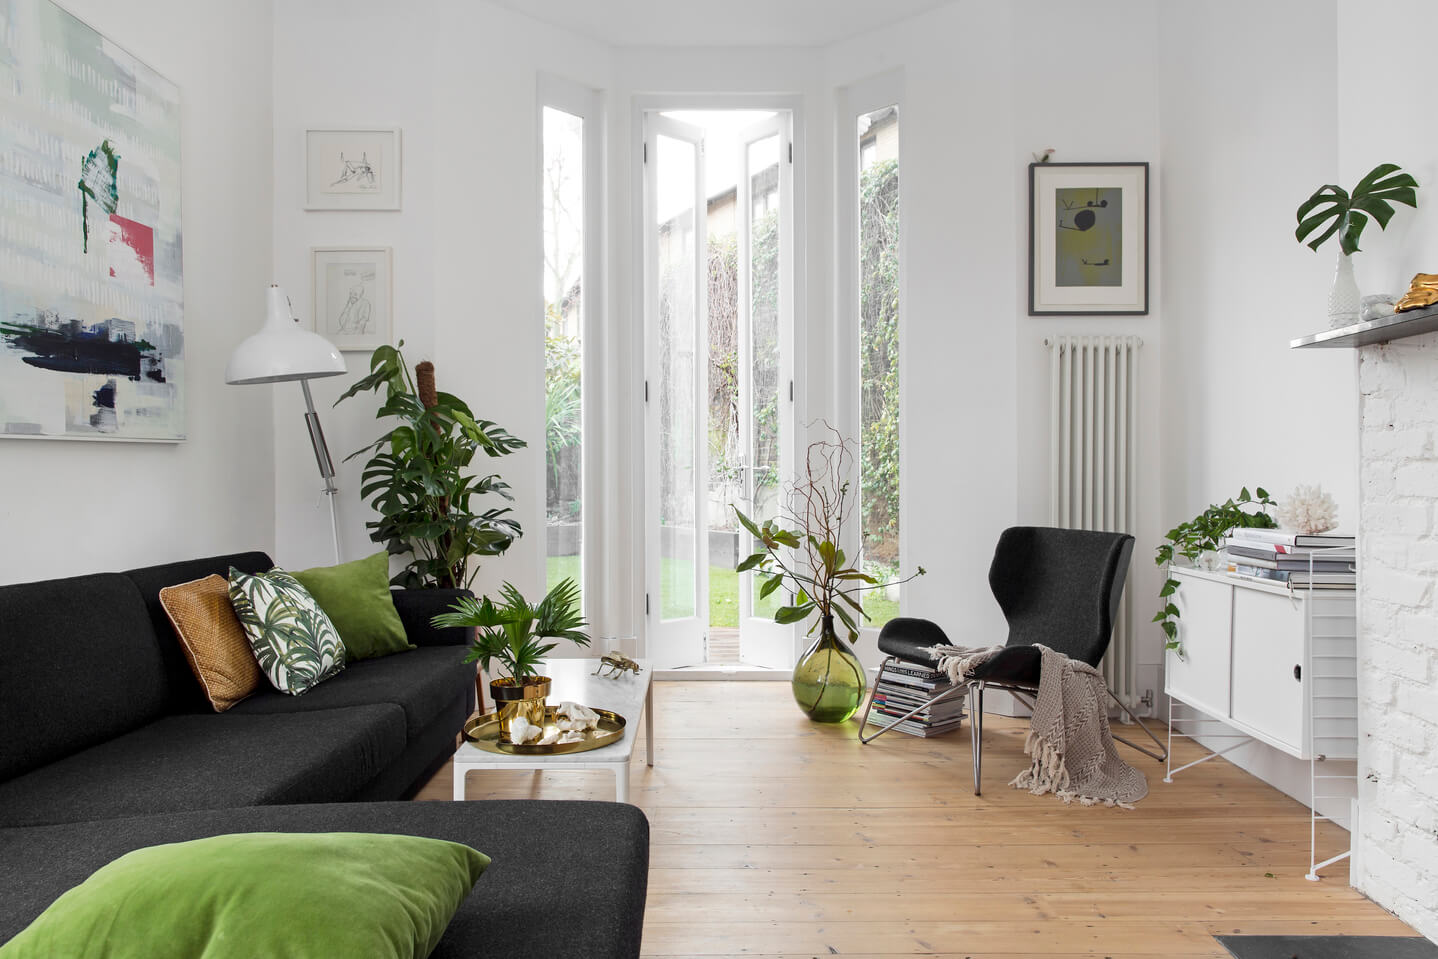 At home with Sofia Sköld from Vild - House of Little